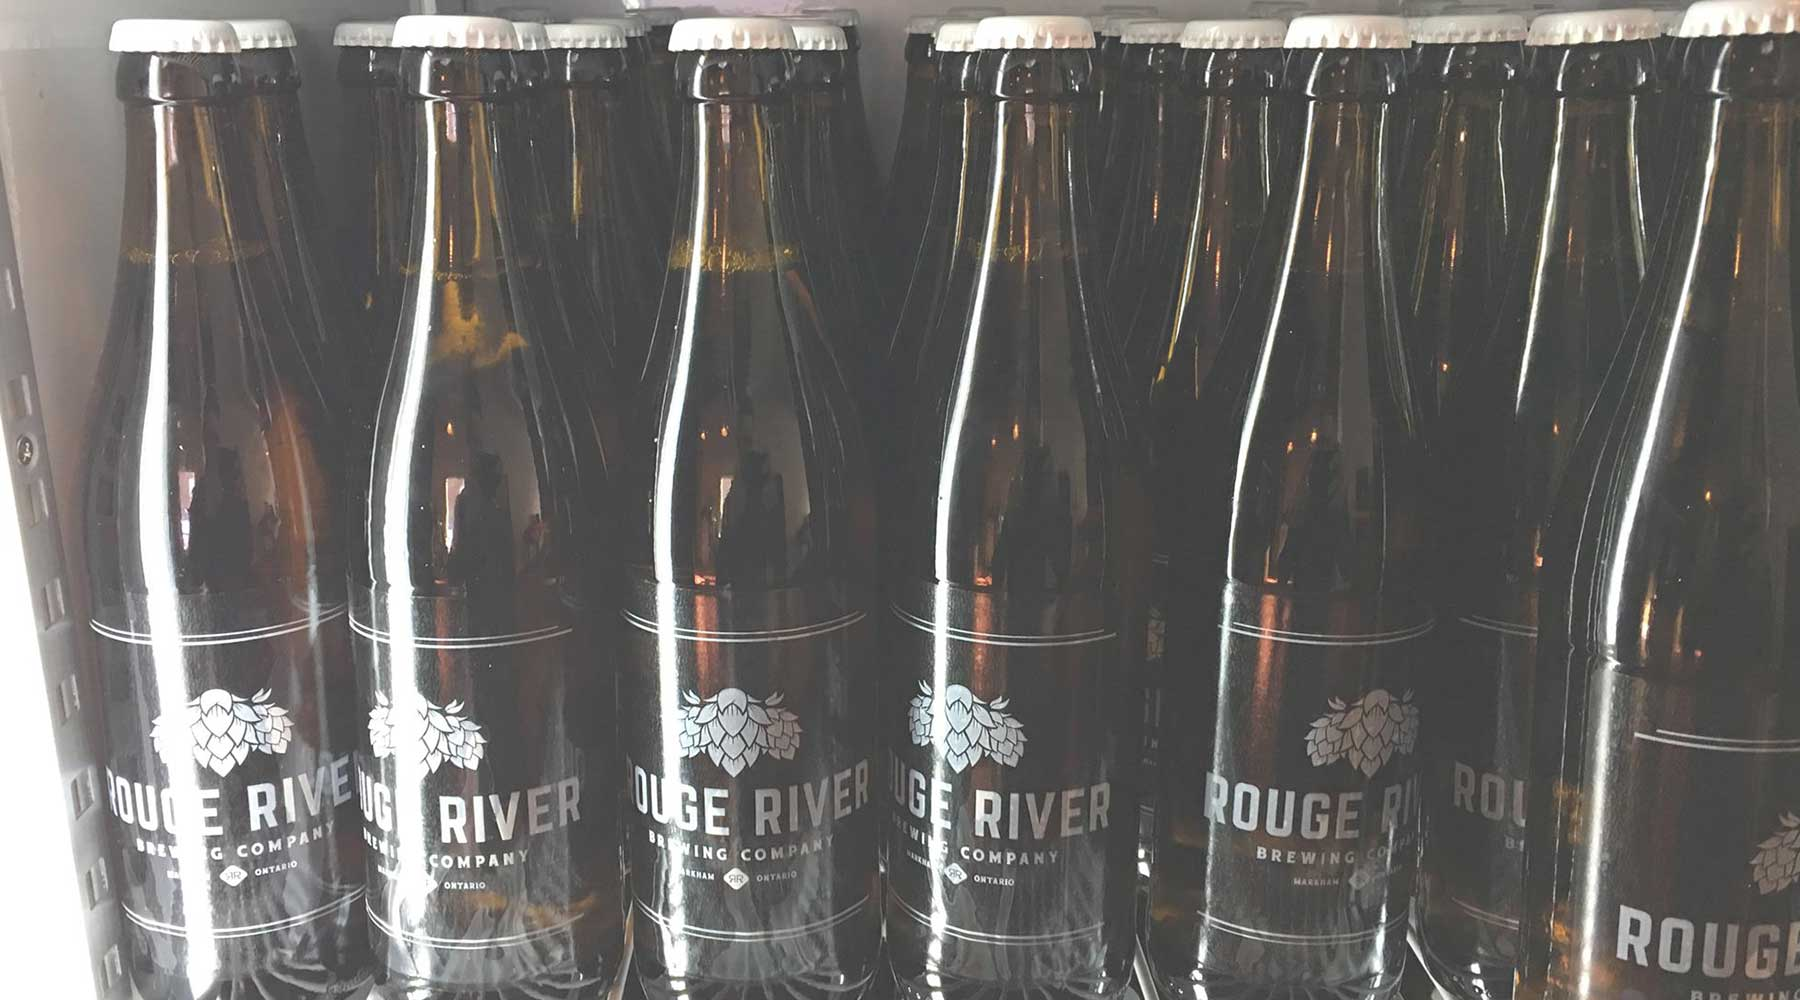 Rouge River Brewing Company | Just Wine